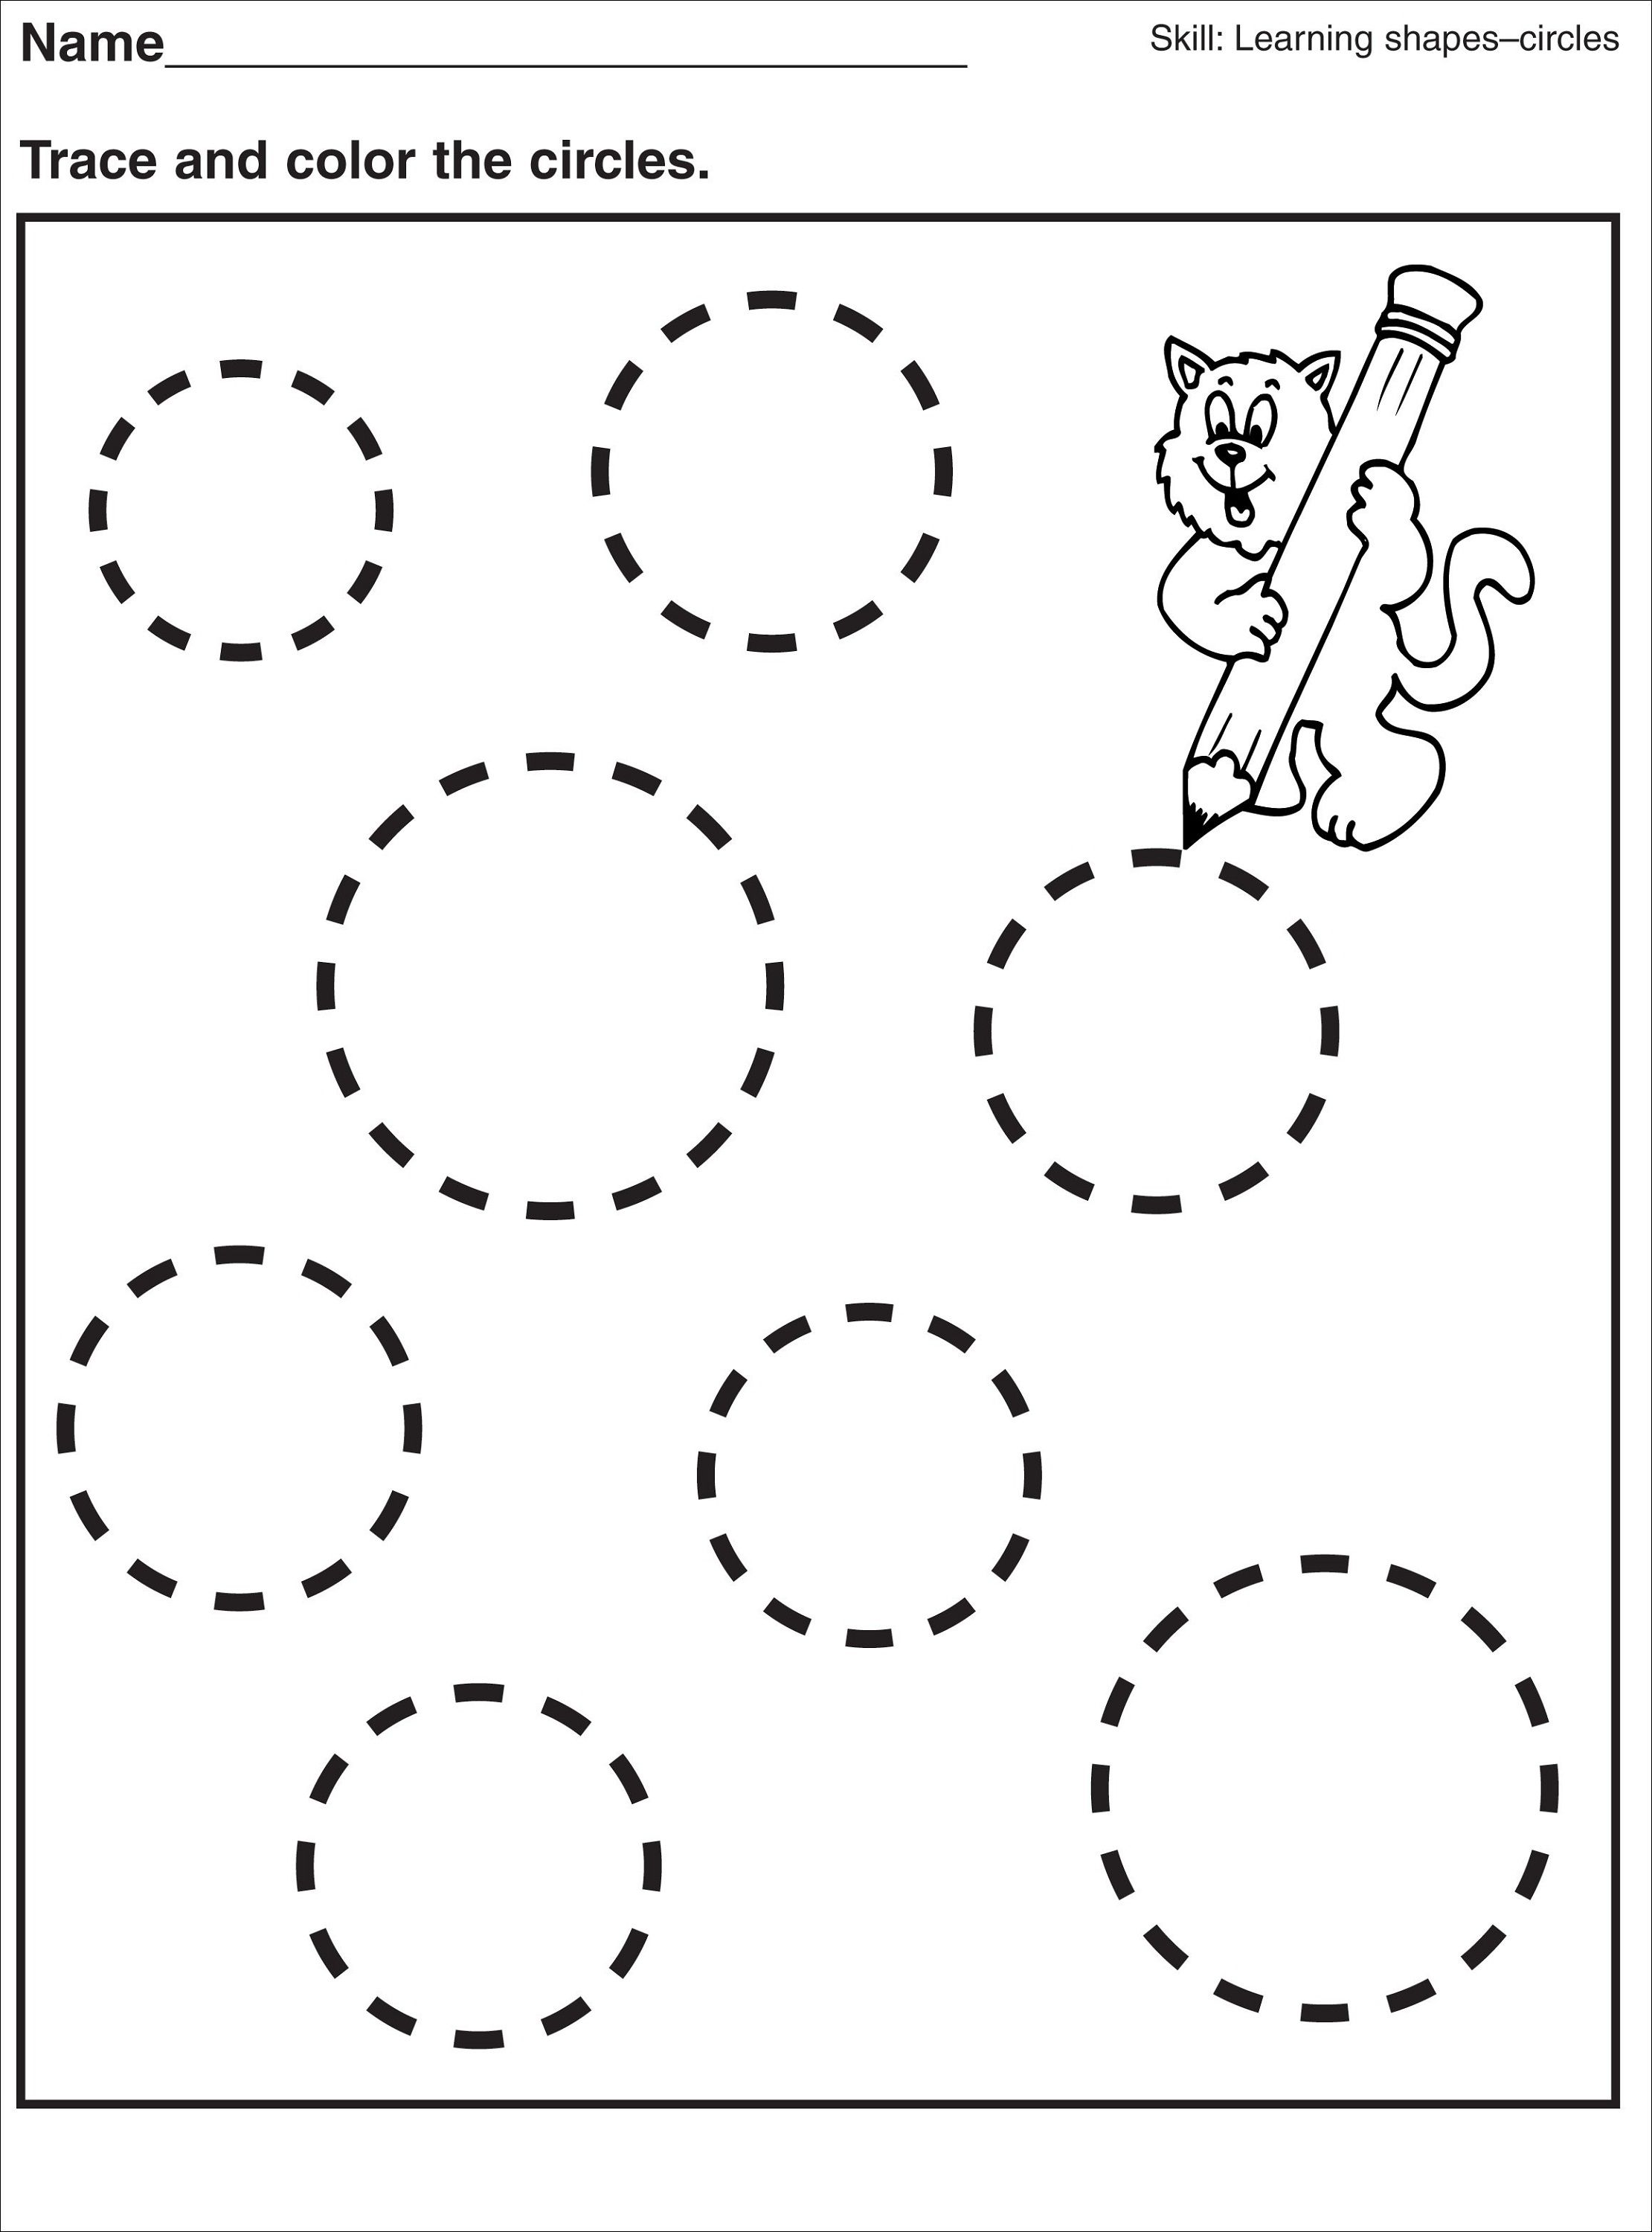 worksheet Tracing Worksheets For 4 Year Olds tracing circle worksheets for preschool activity shelter kids shelter